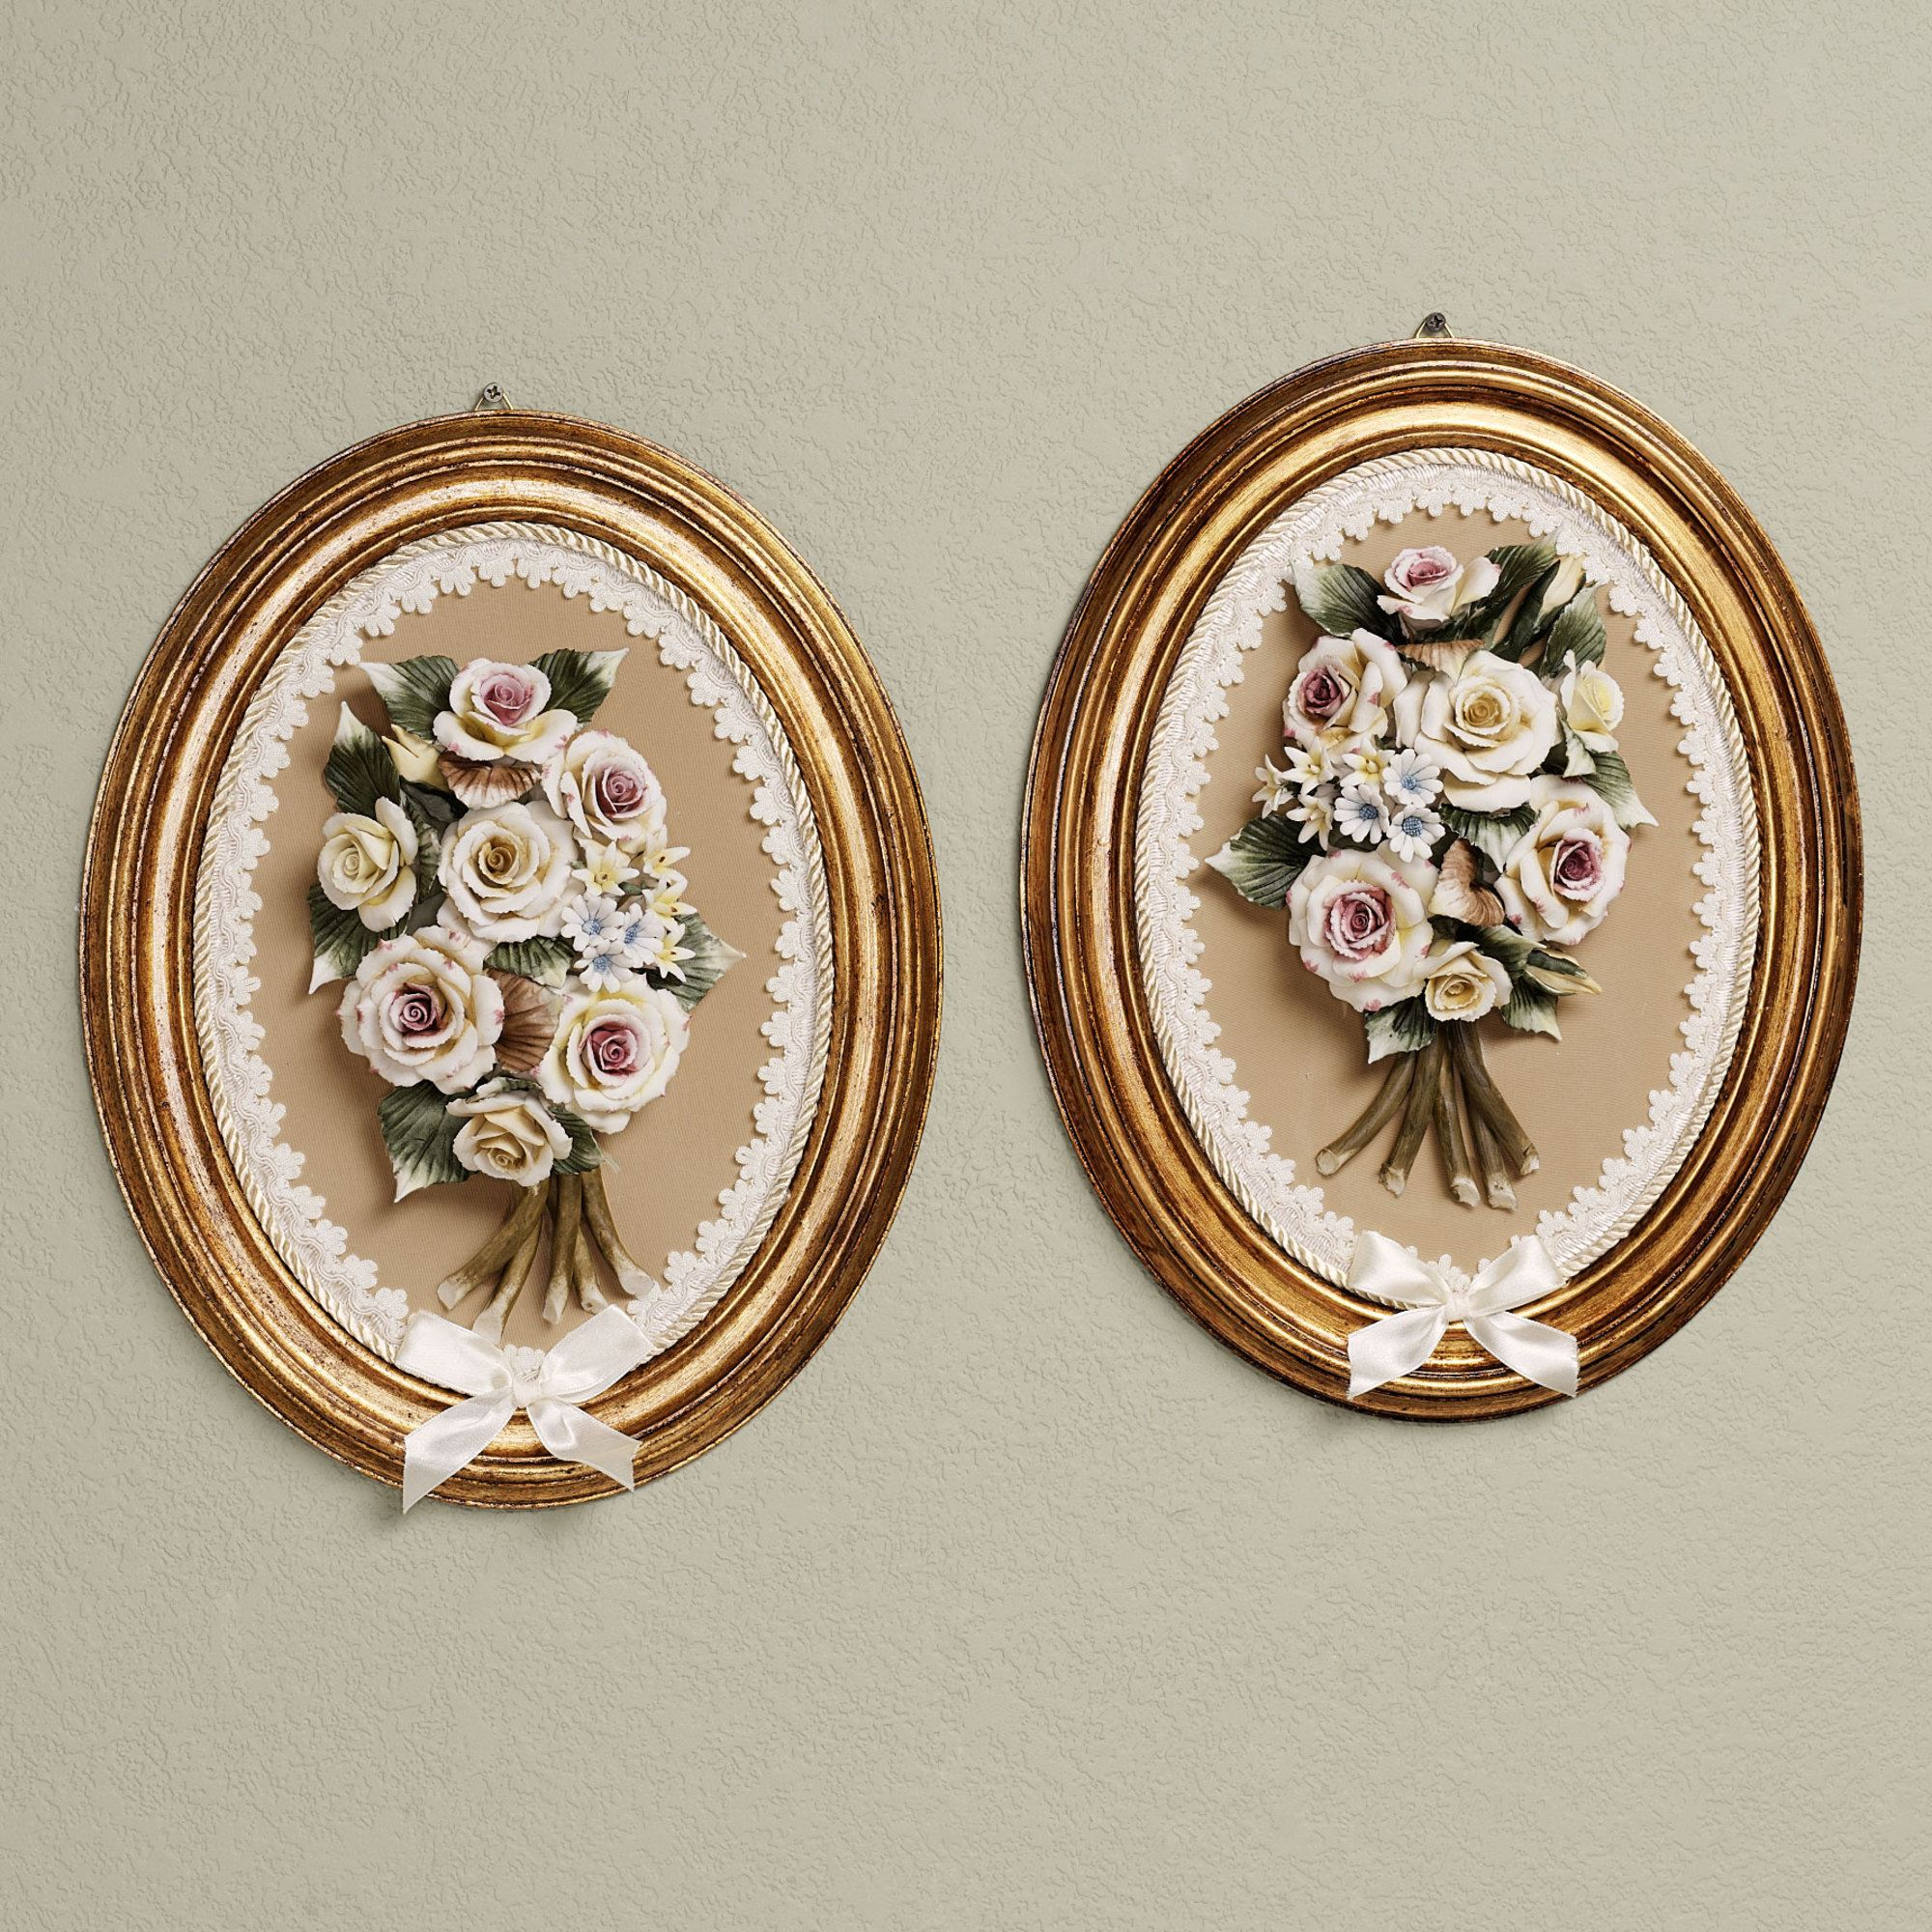 Awesome wall plaques with antique pattern design for wall decorating home ideas